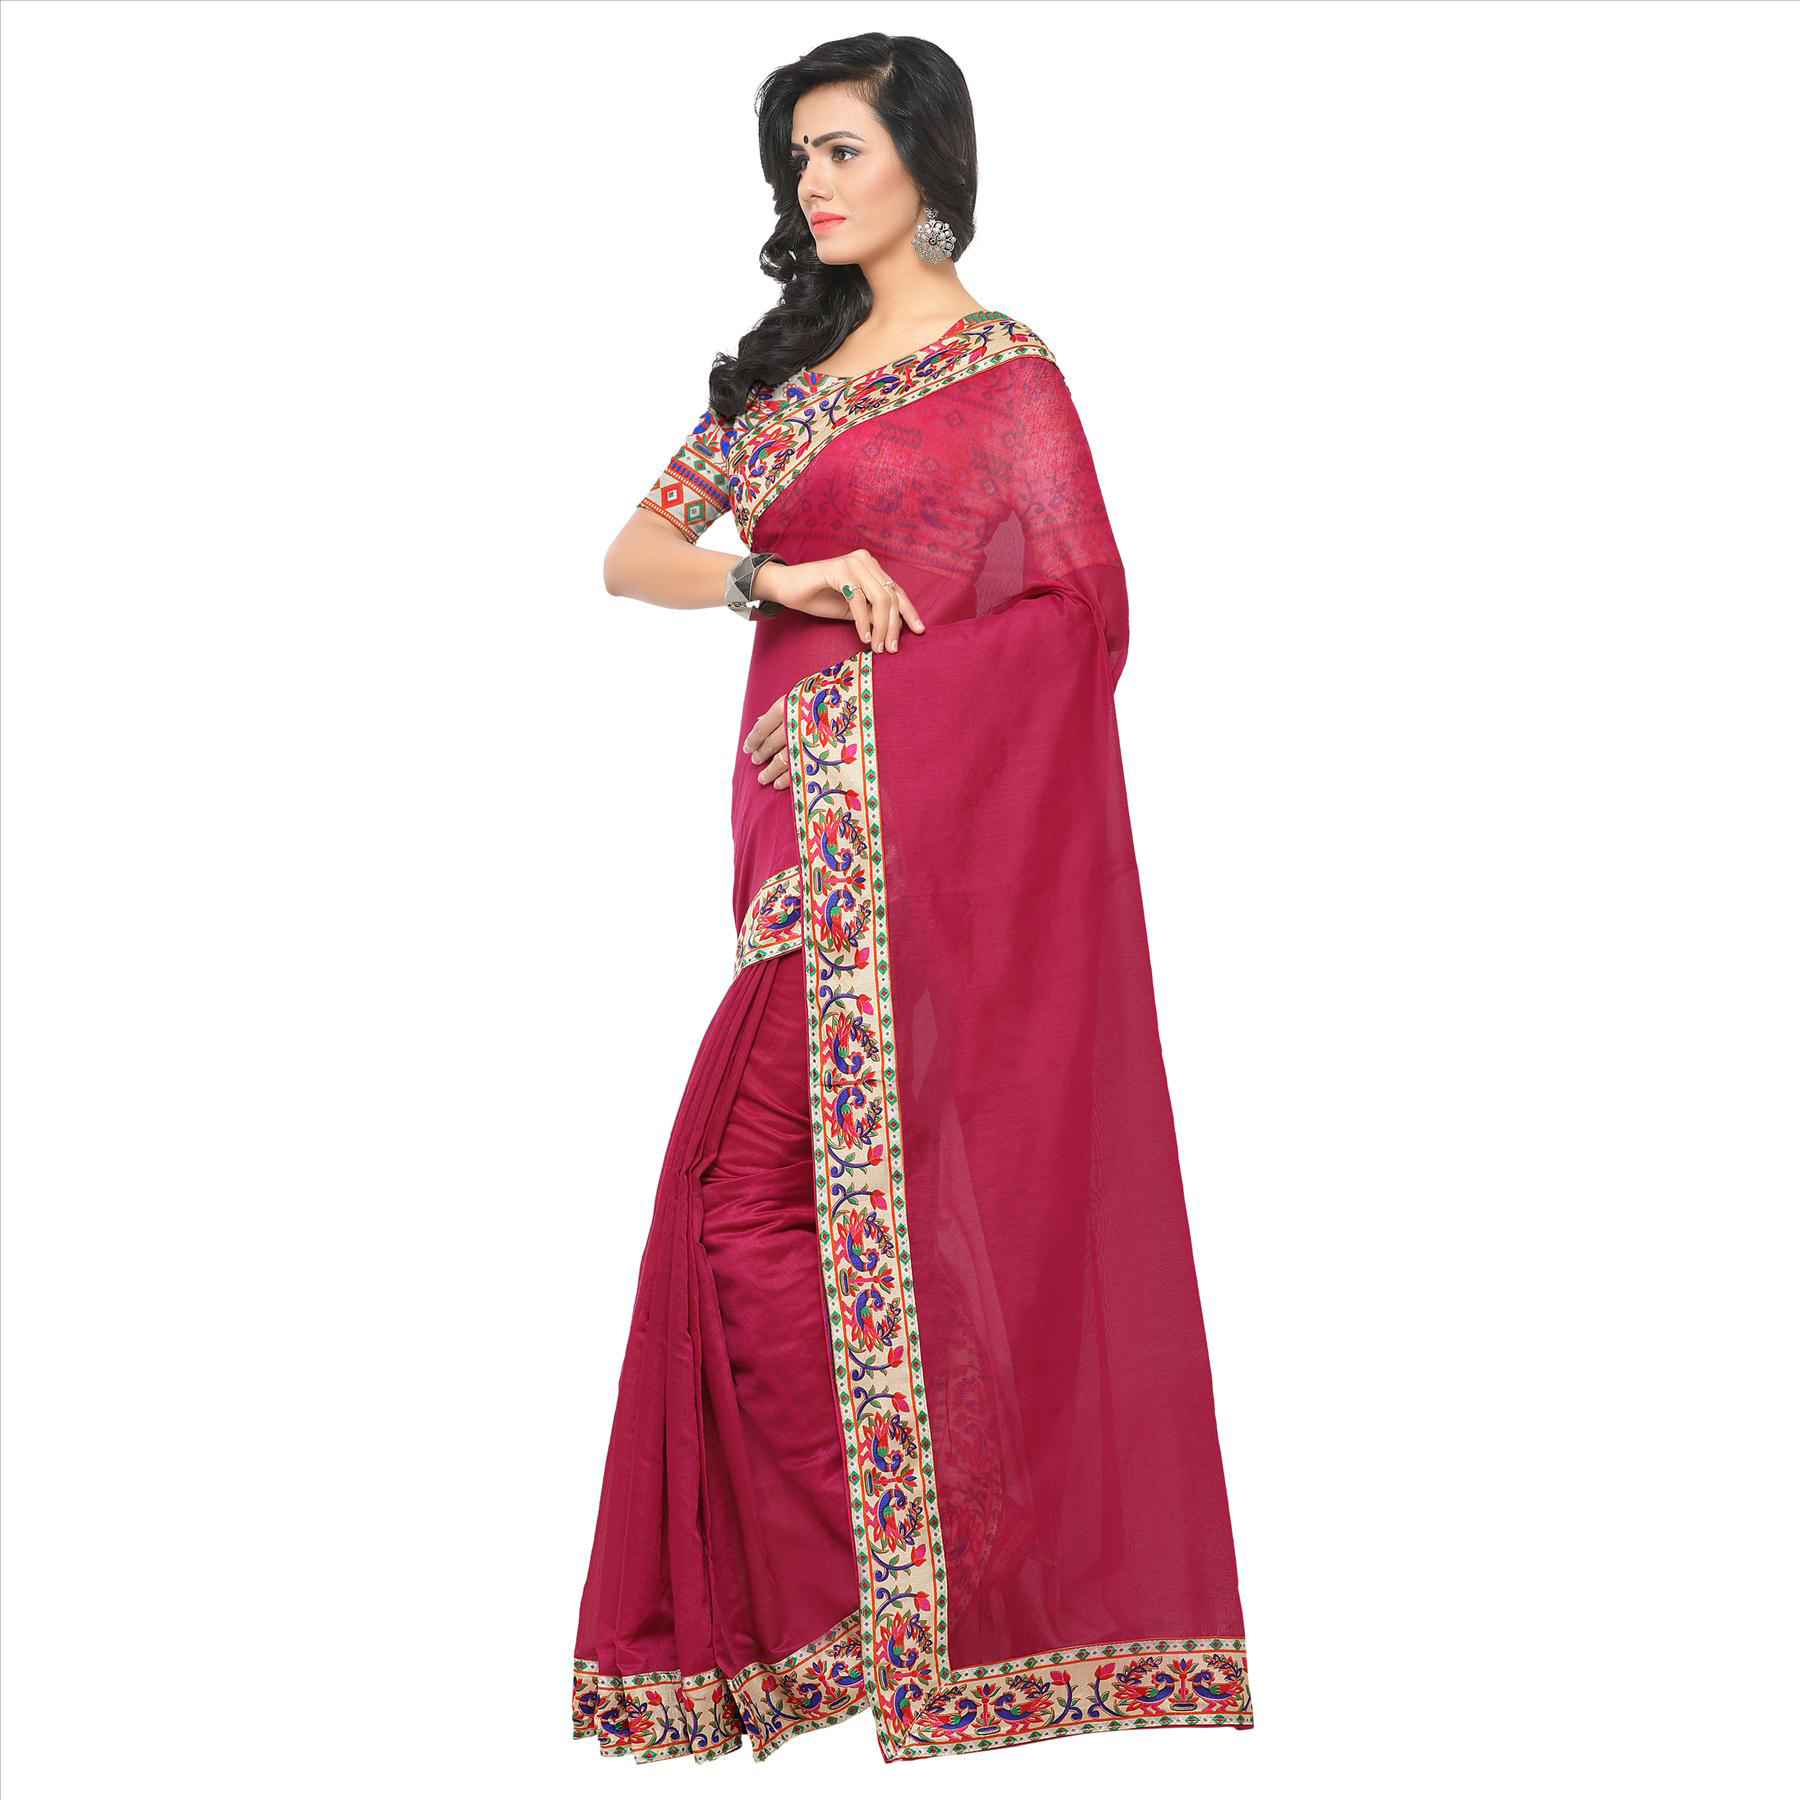 Charming Magenta Colored Lace Bordered Chanderi Silk Saree